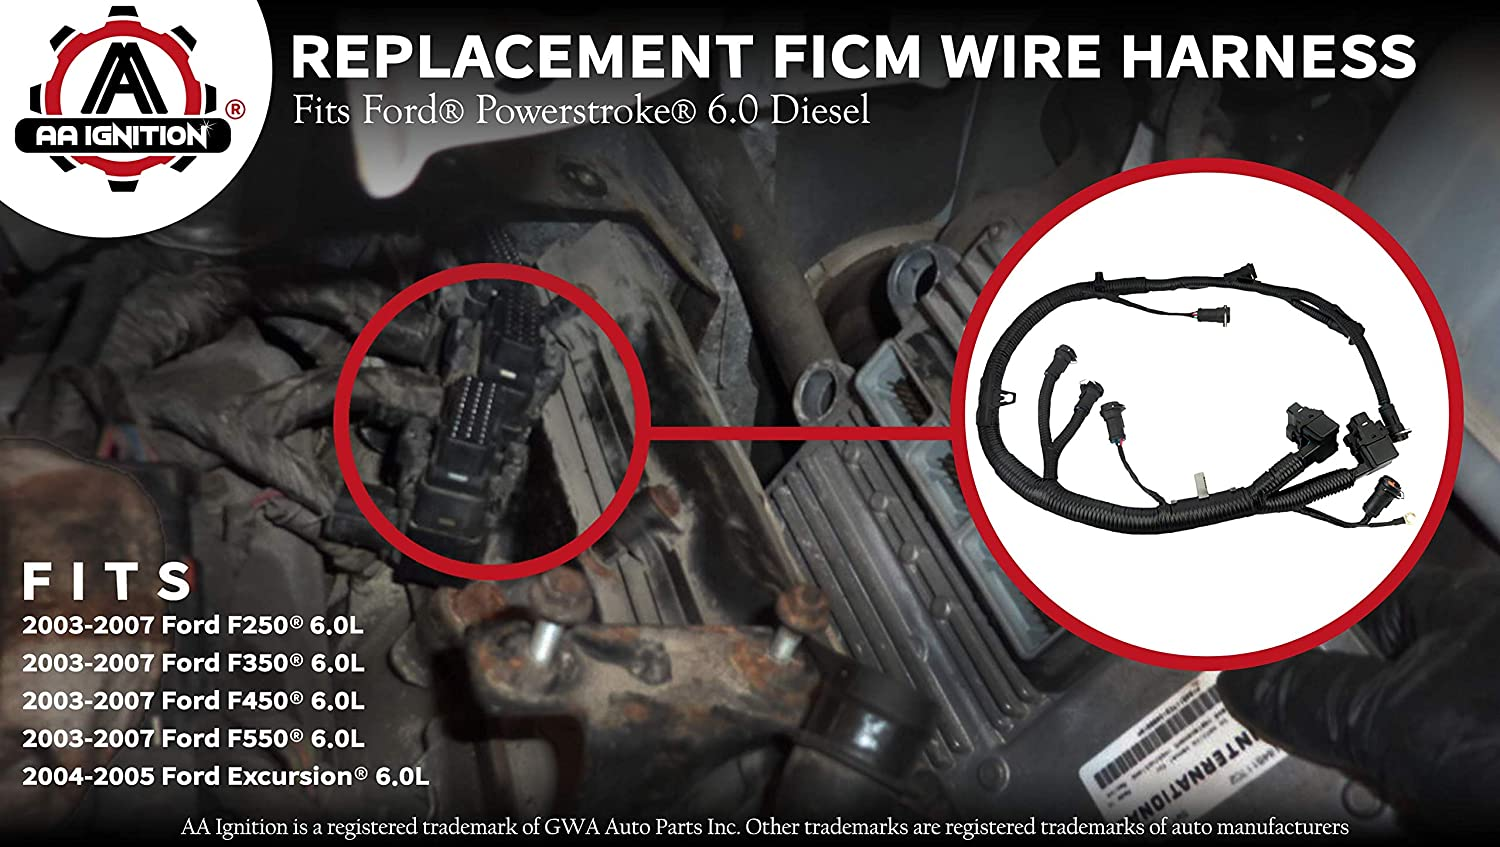 Ficm Wiring Harness | Wiring Diagram on